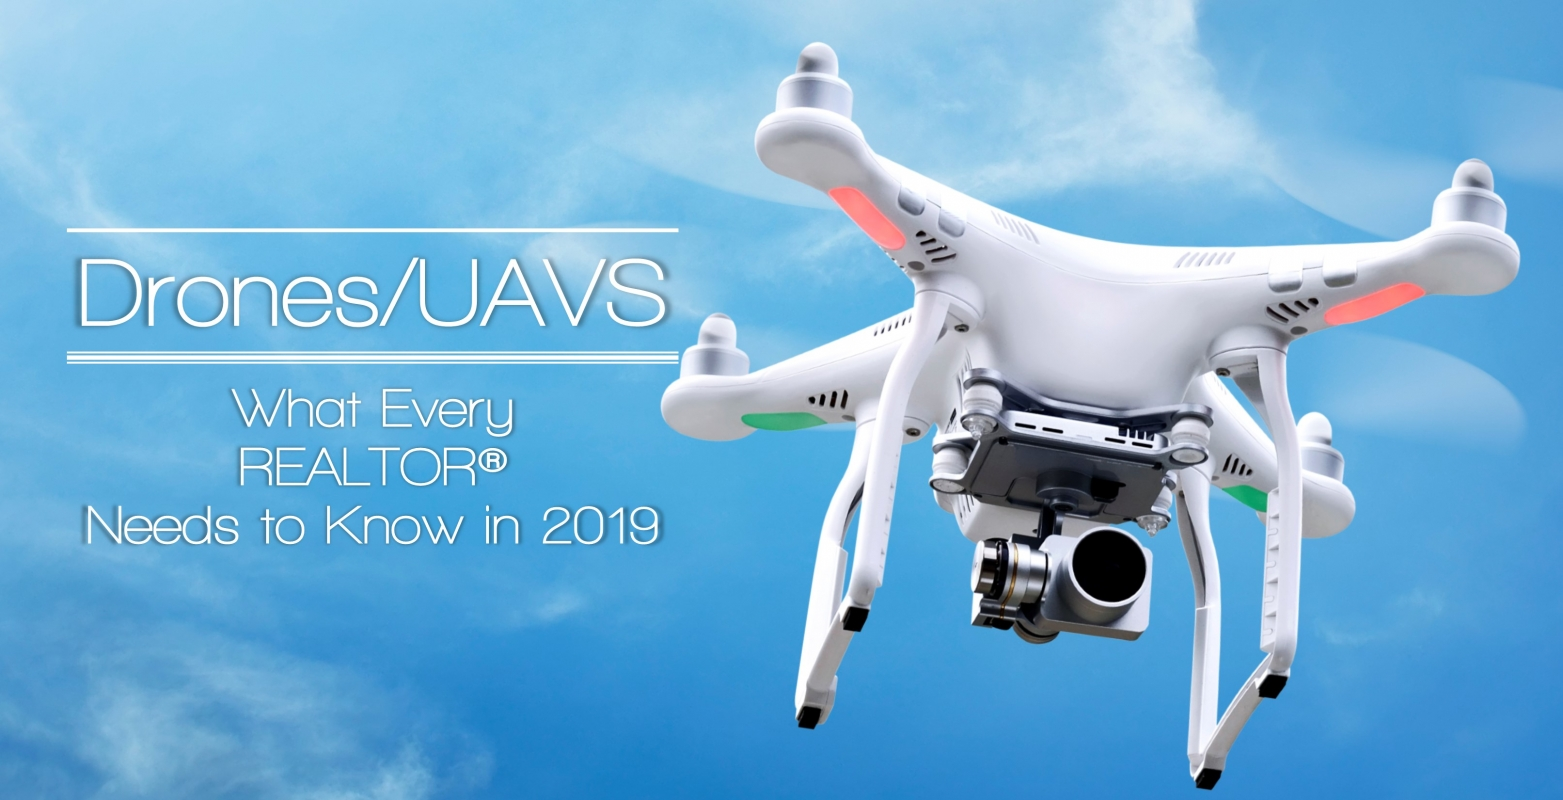 Drones/UAVs--What REALTORS Need to Know in 2019